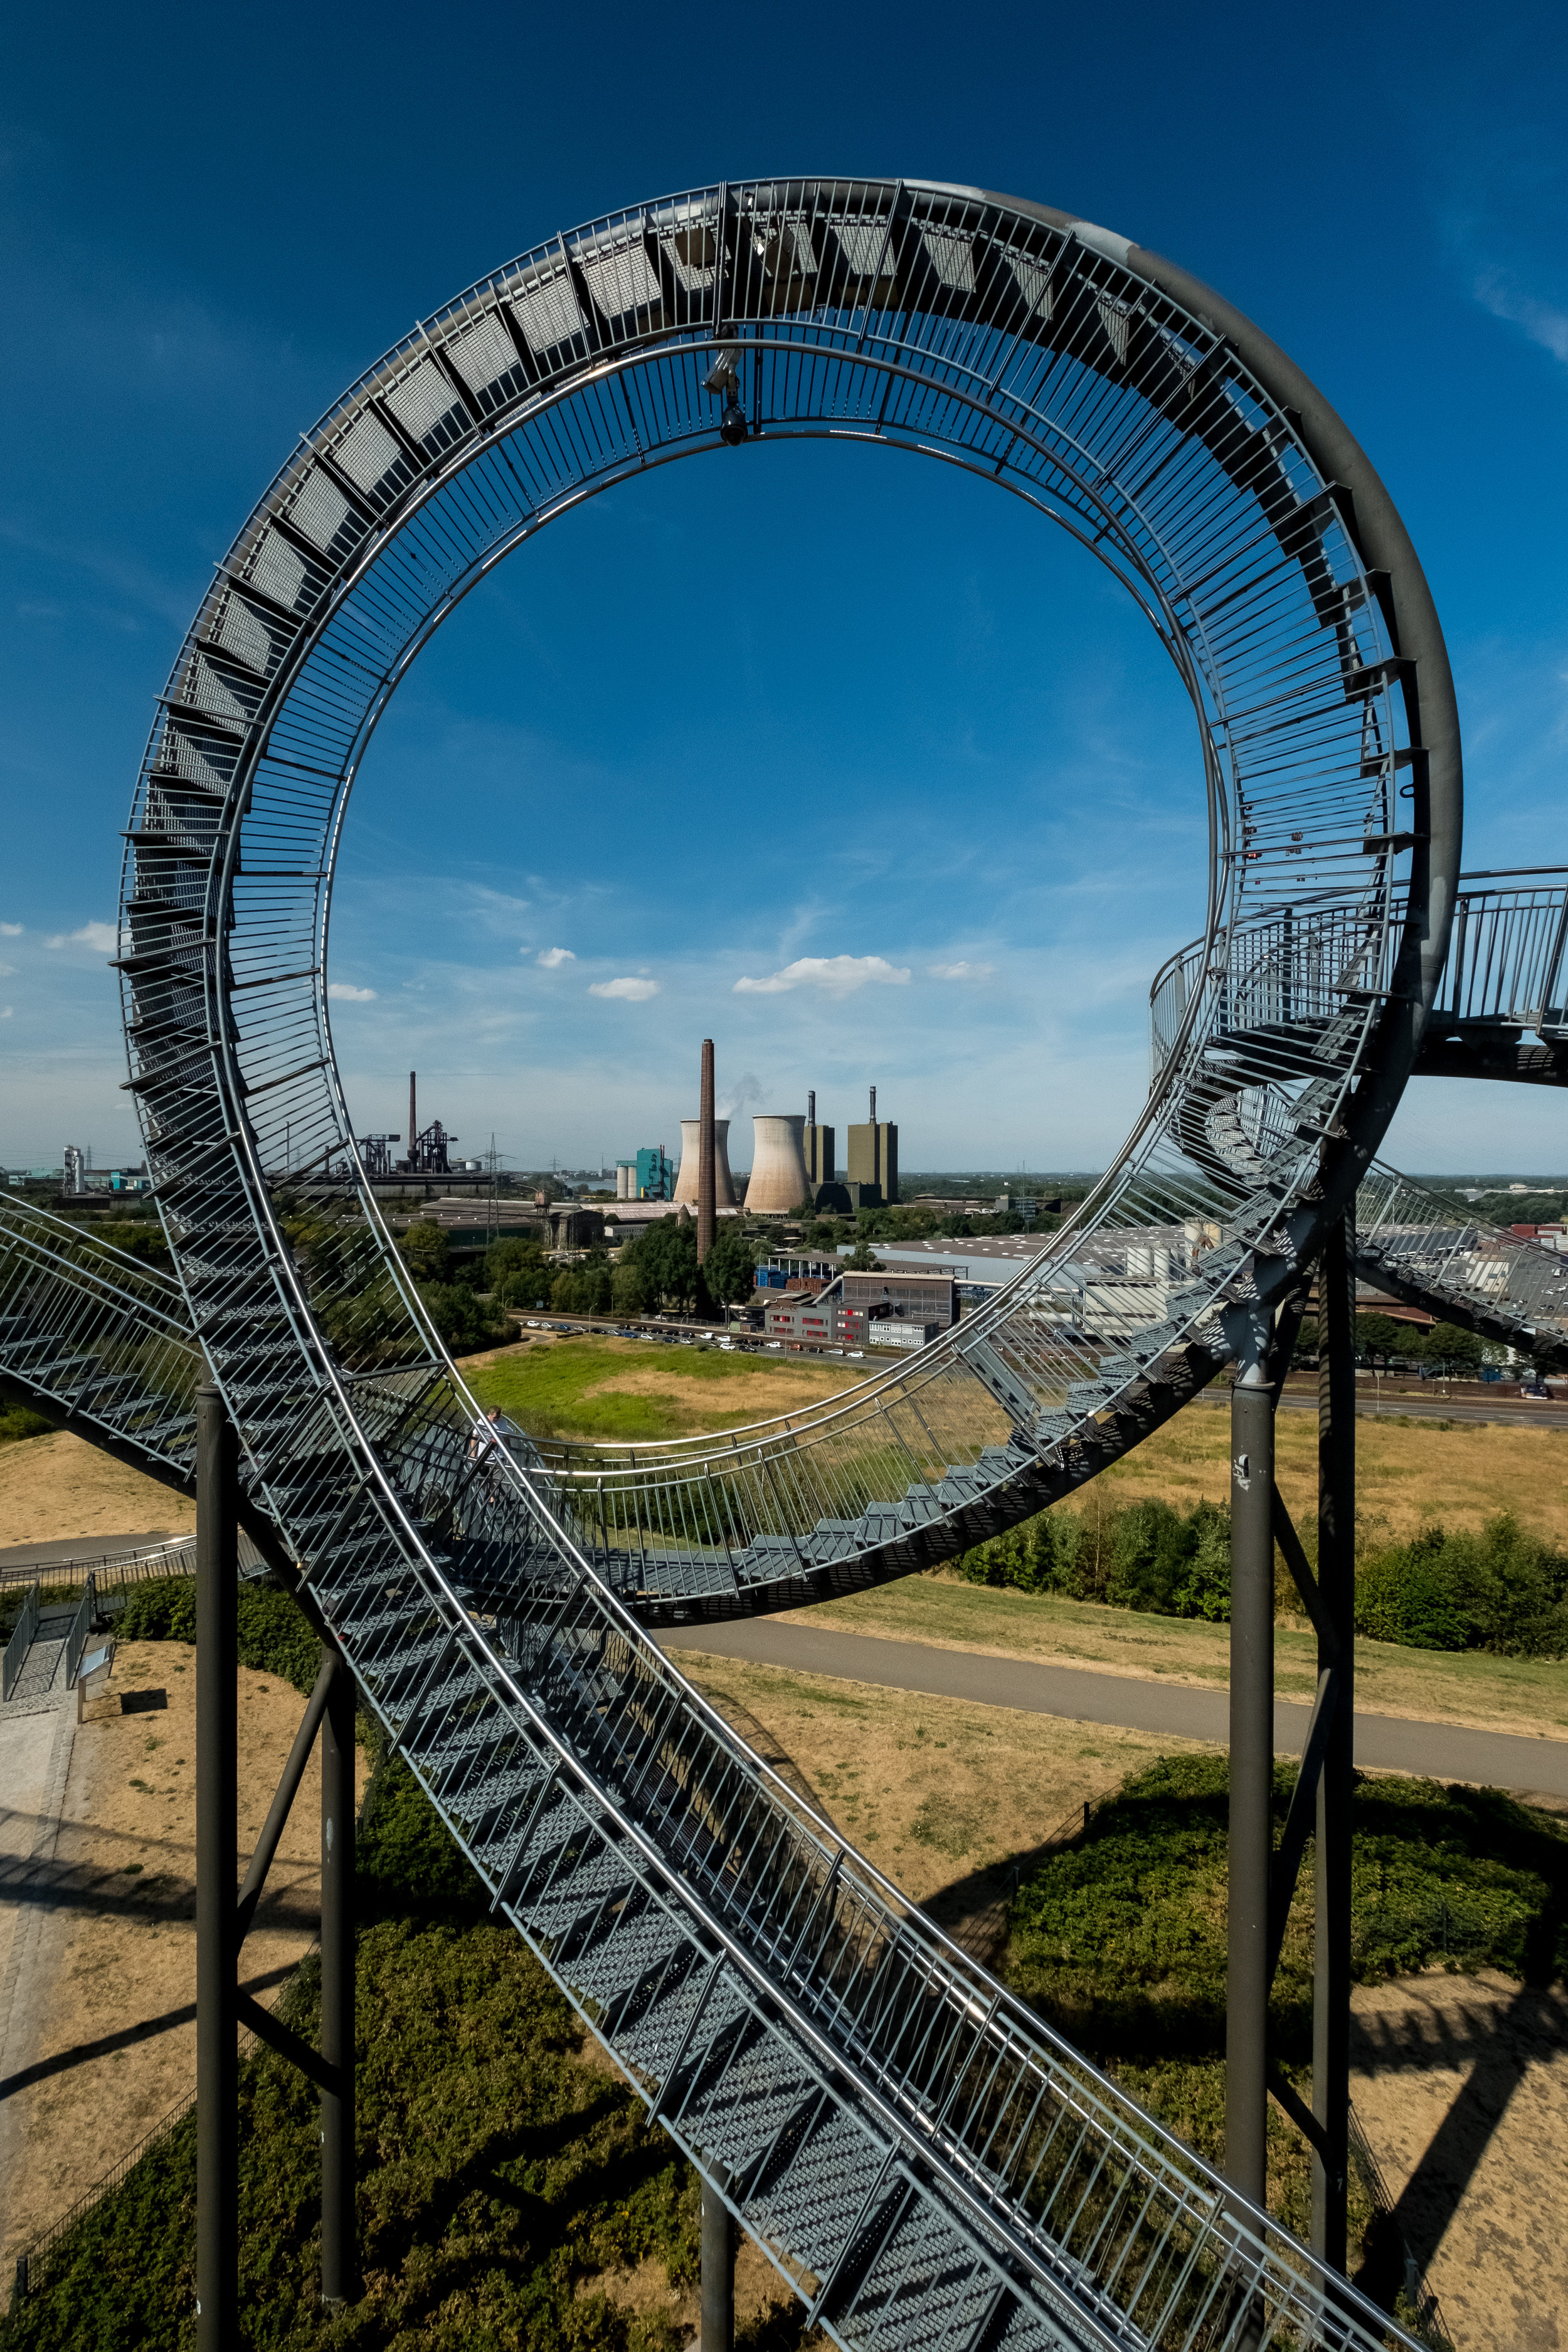 The surrounding industry fit in well, not only compositionally, but also as a reminder of why the Tiger & Turtle is here. This image is available as a print, just click on the image.